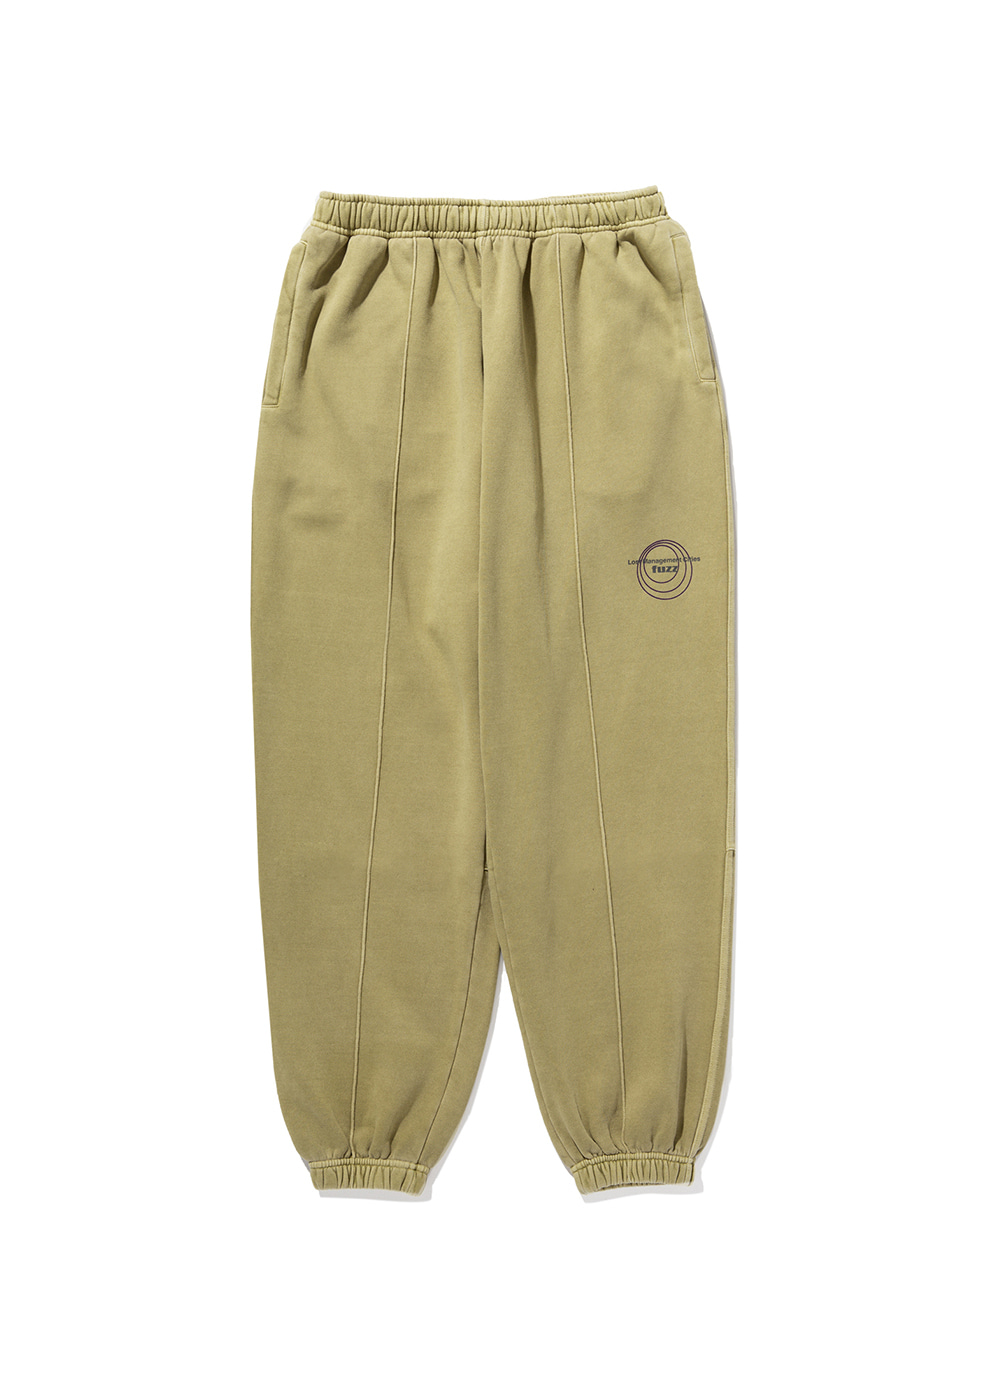 LMC x FUZZ CIRCLE SWEAT PANTS olive